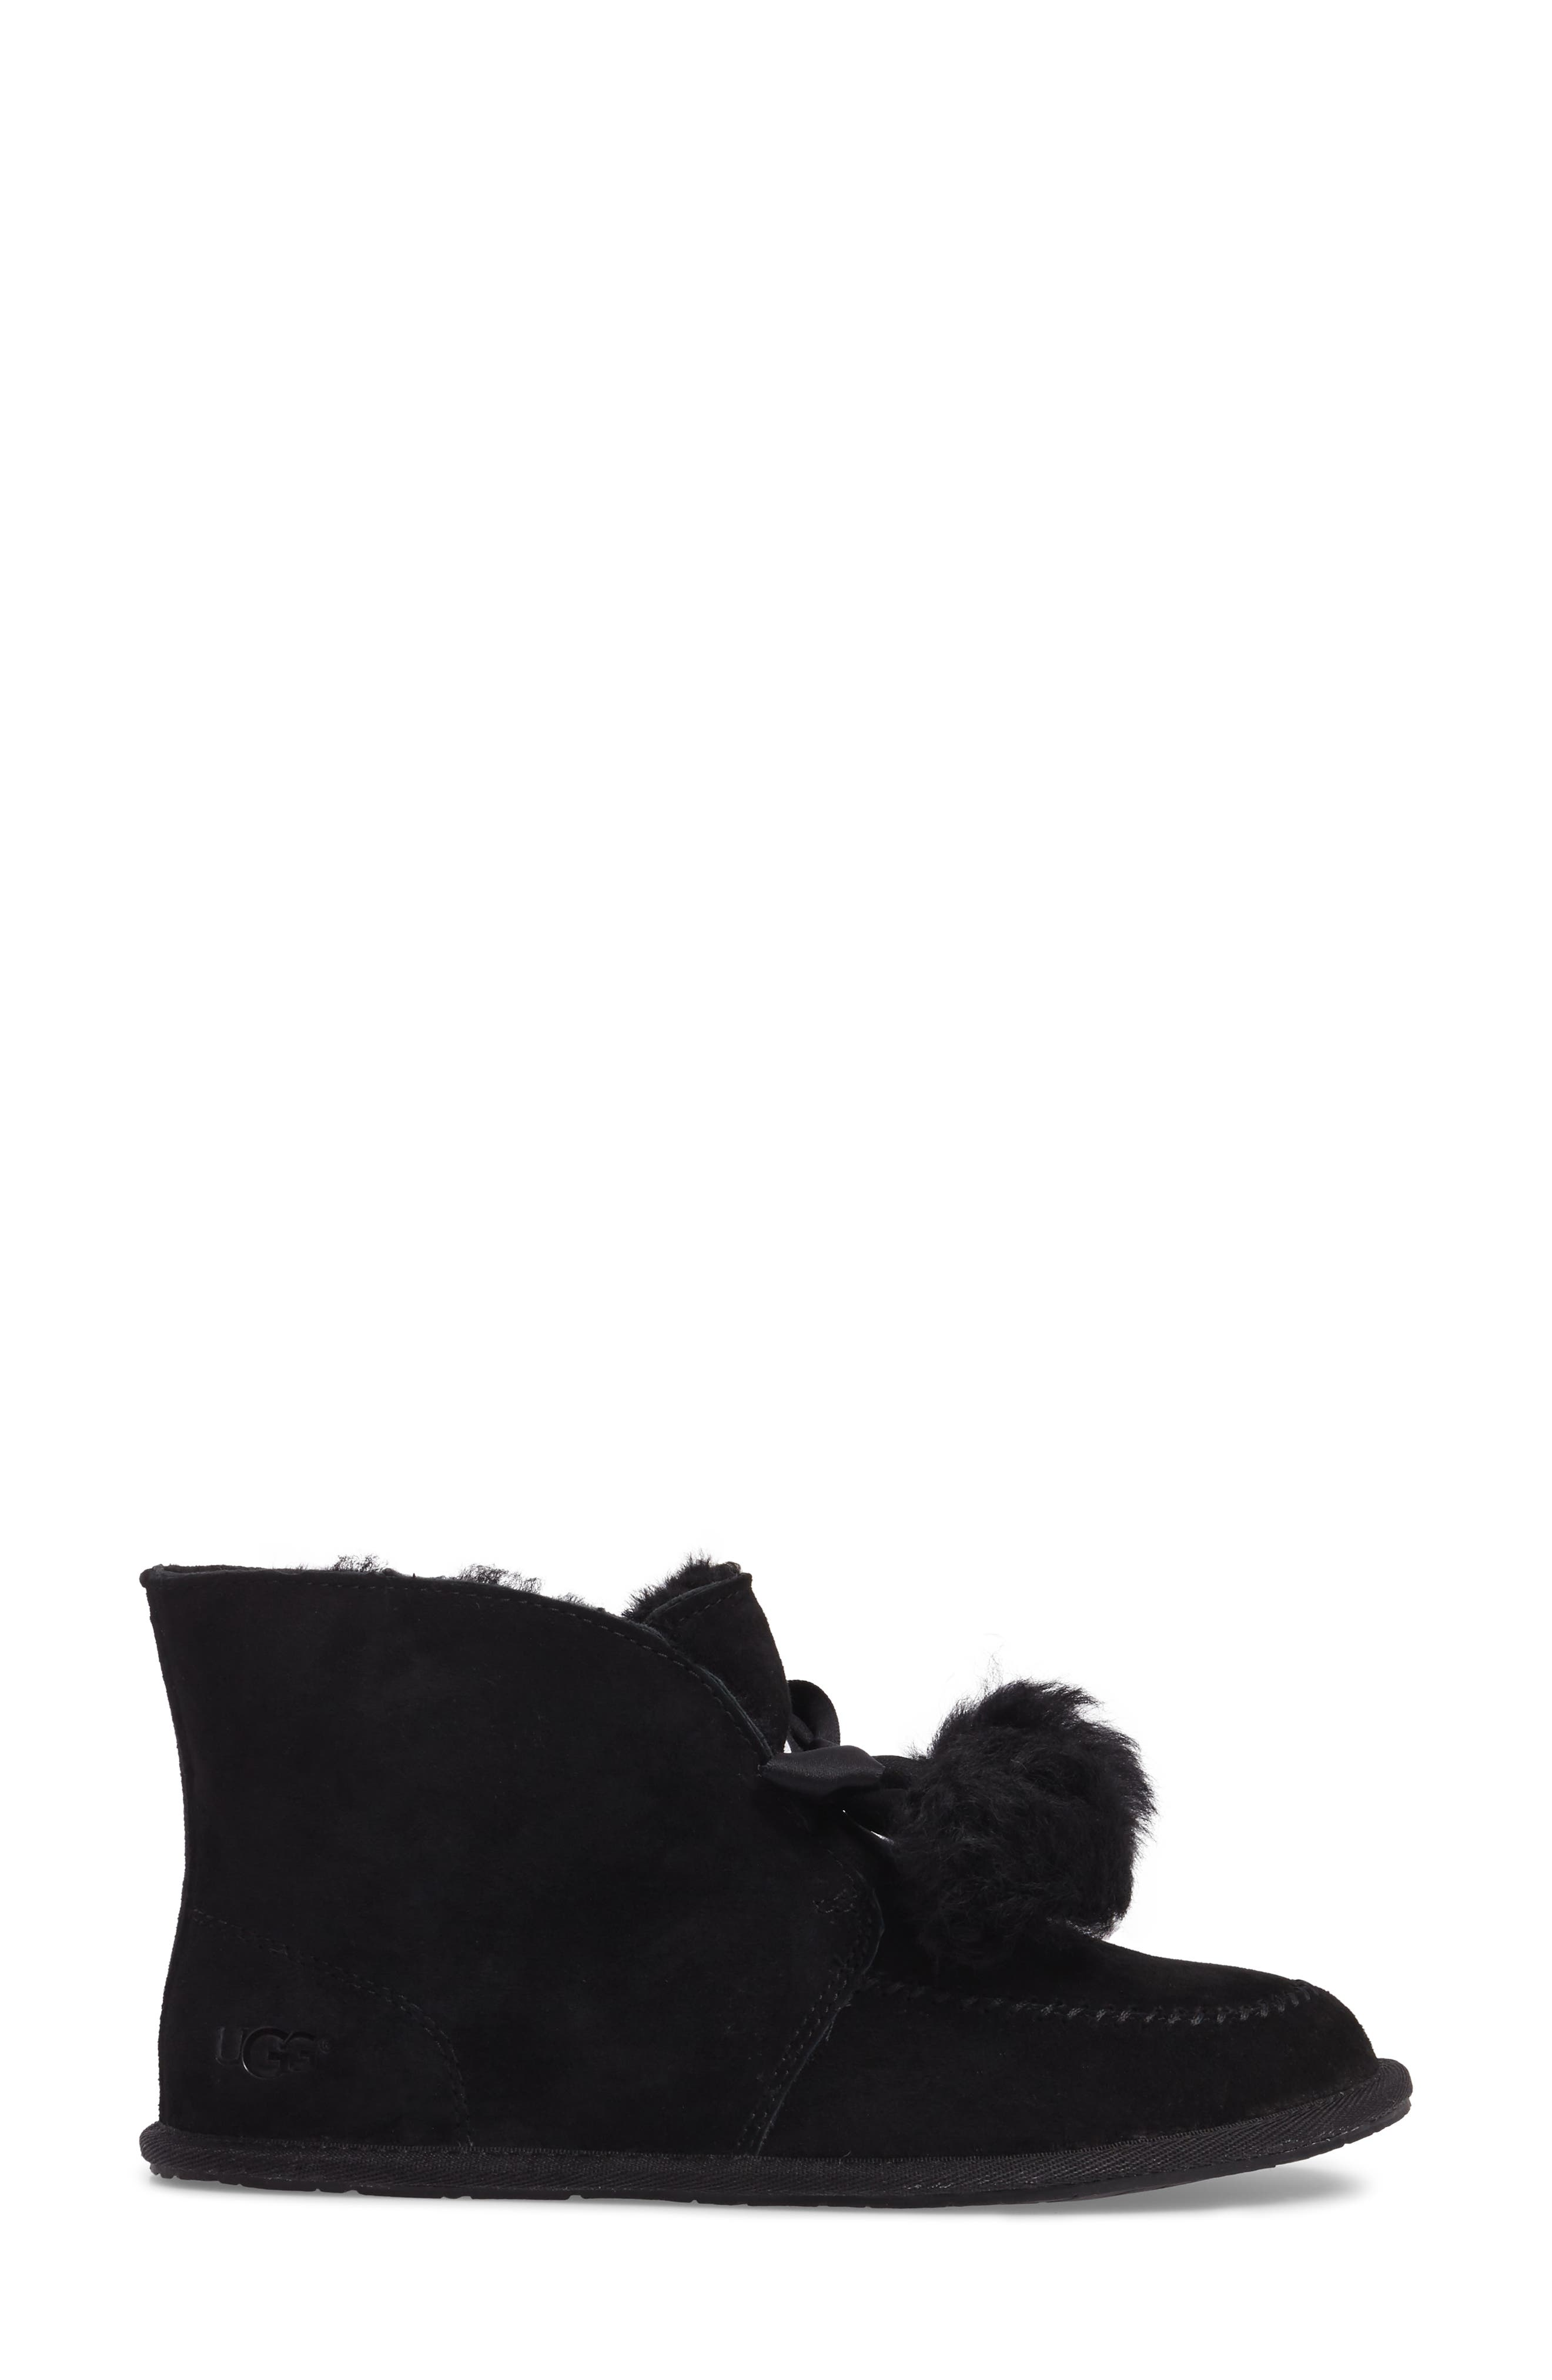 Kallen Silkee<sup>™</sup> Suede Slipper,                             Alternate thumbnail 3, color,                             001